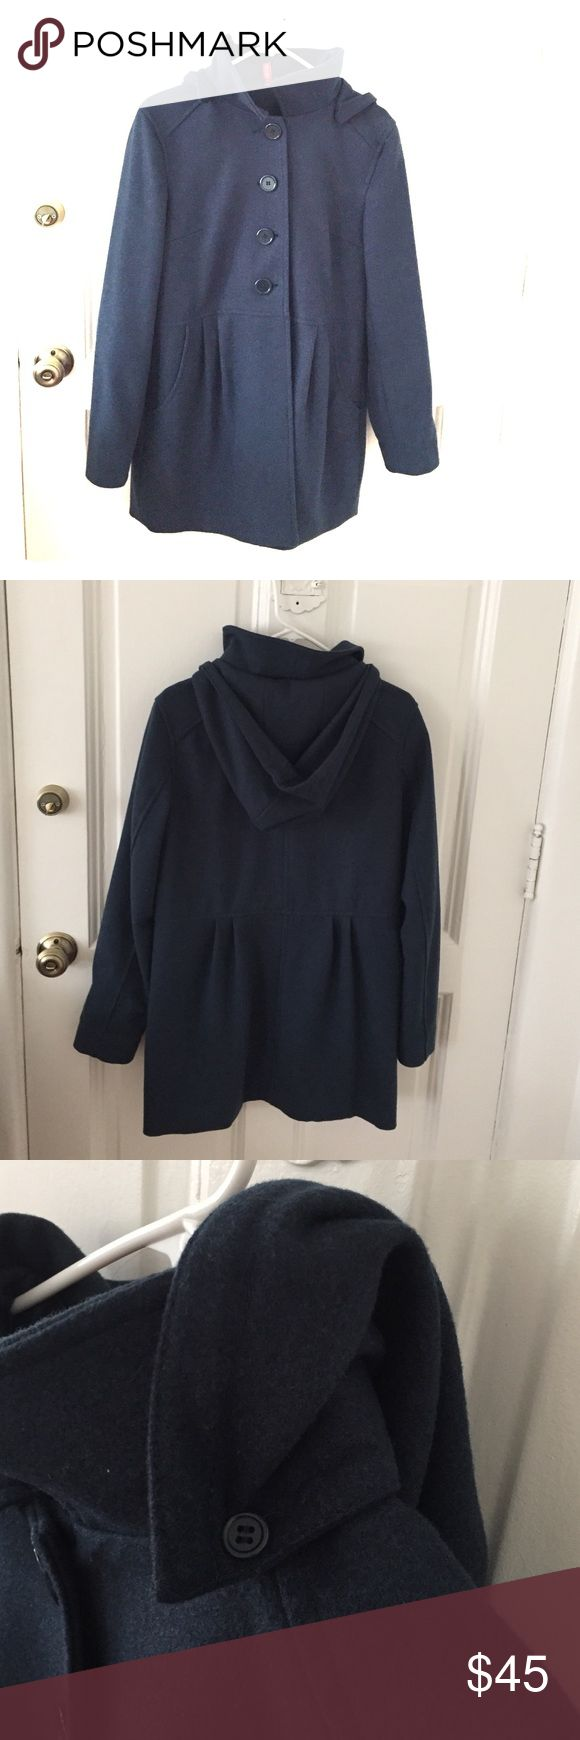 H&M knee length coat with removable hood! This is a super nice knee length H&M Divided coat. It hits at the knee and has a removable hood. Very unique dark teal color. In excellent condition. Price is firm, if not sold I will definitely keep. H&M Jackets & Coats